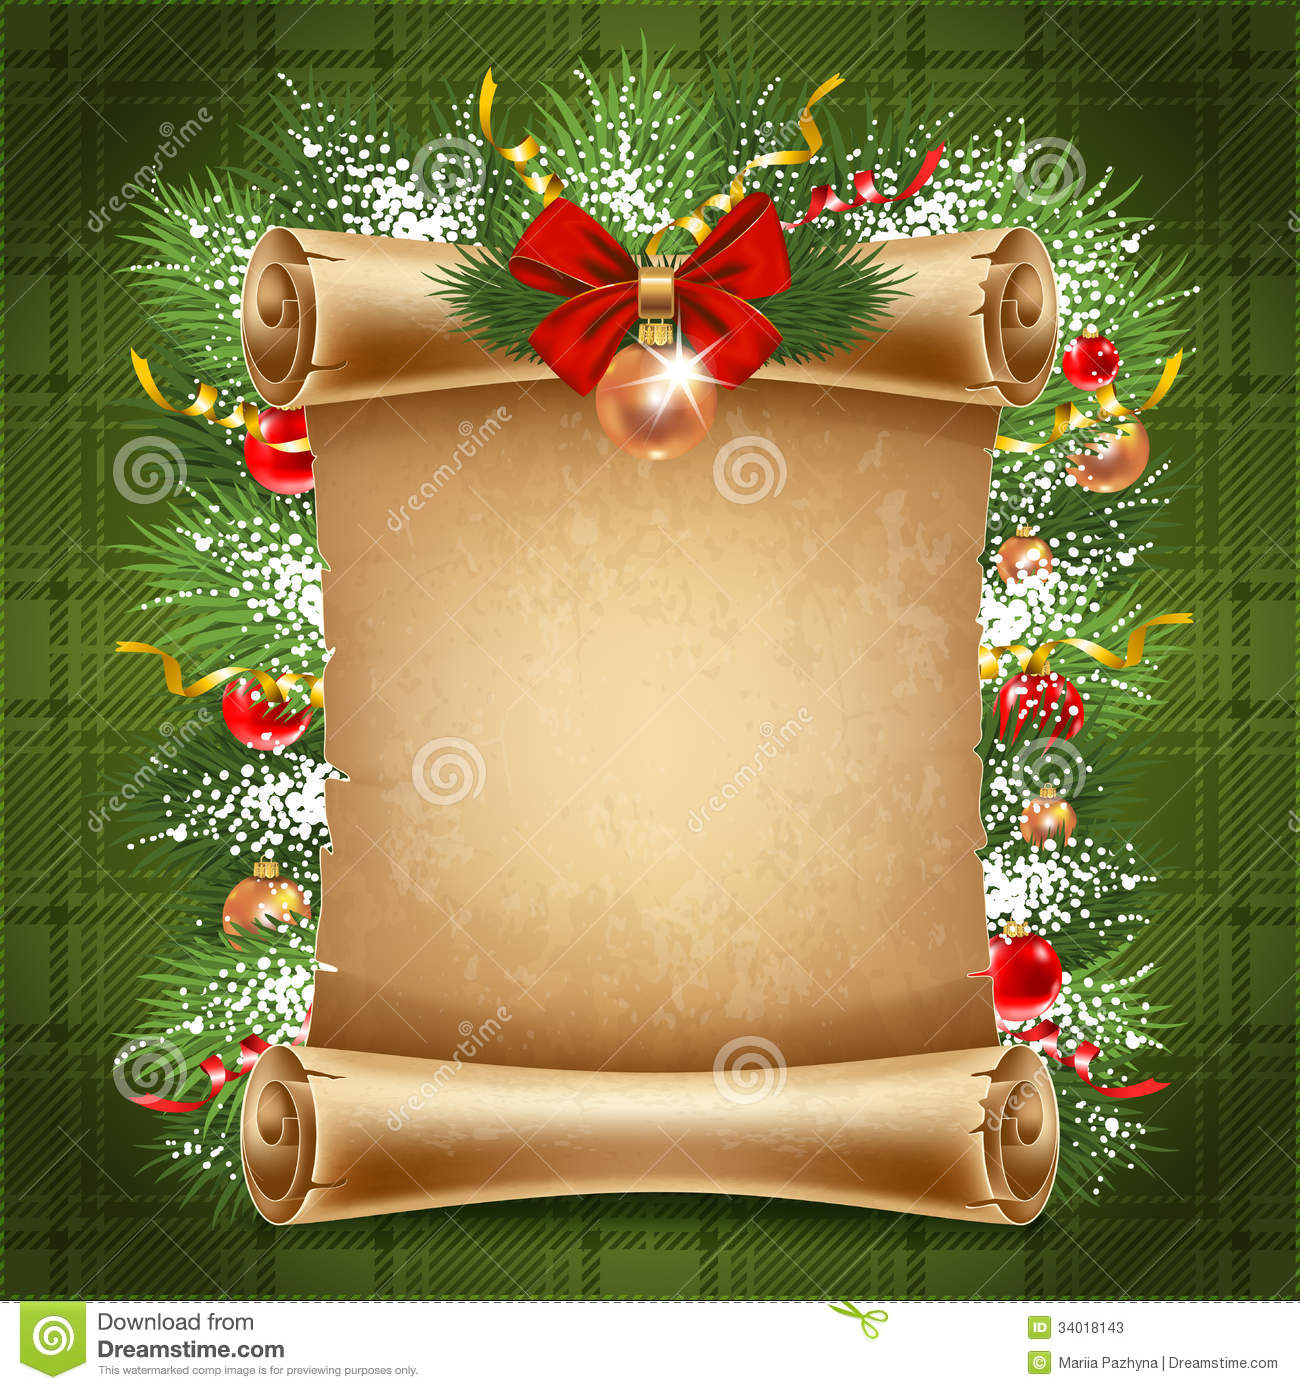 Christmas Background Stock Vector. Illustration Of